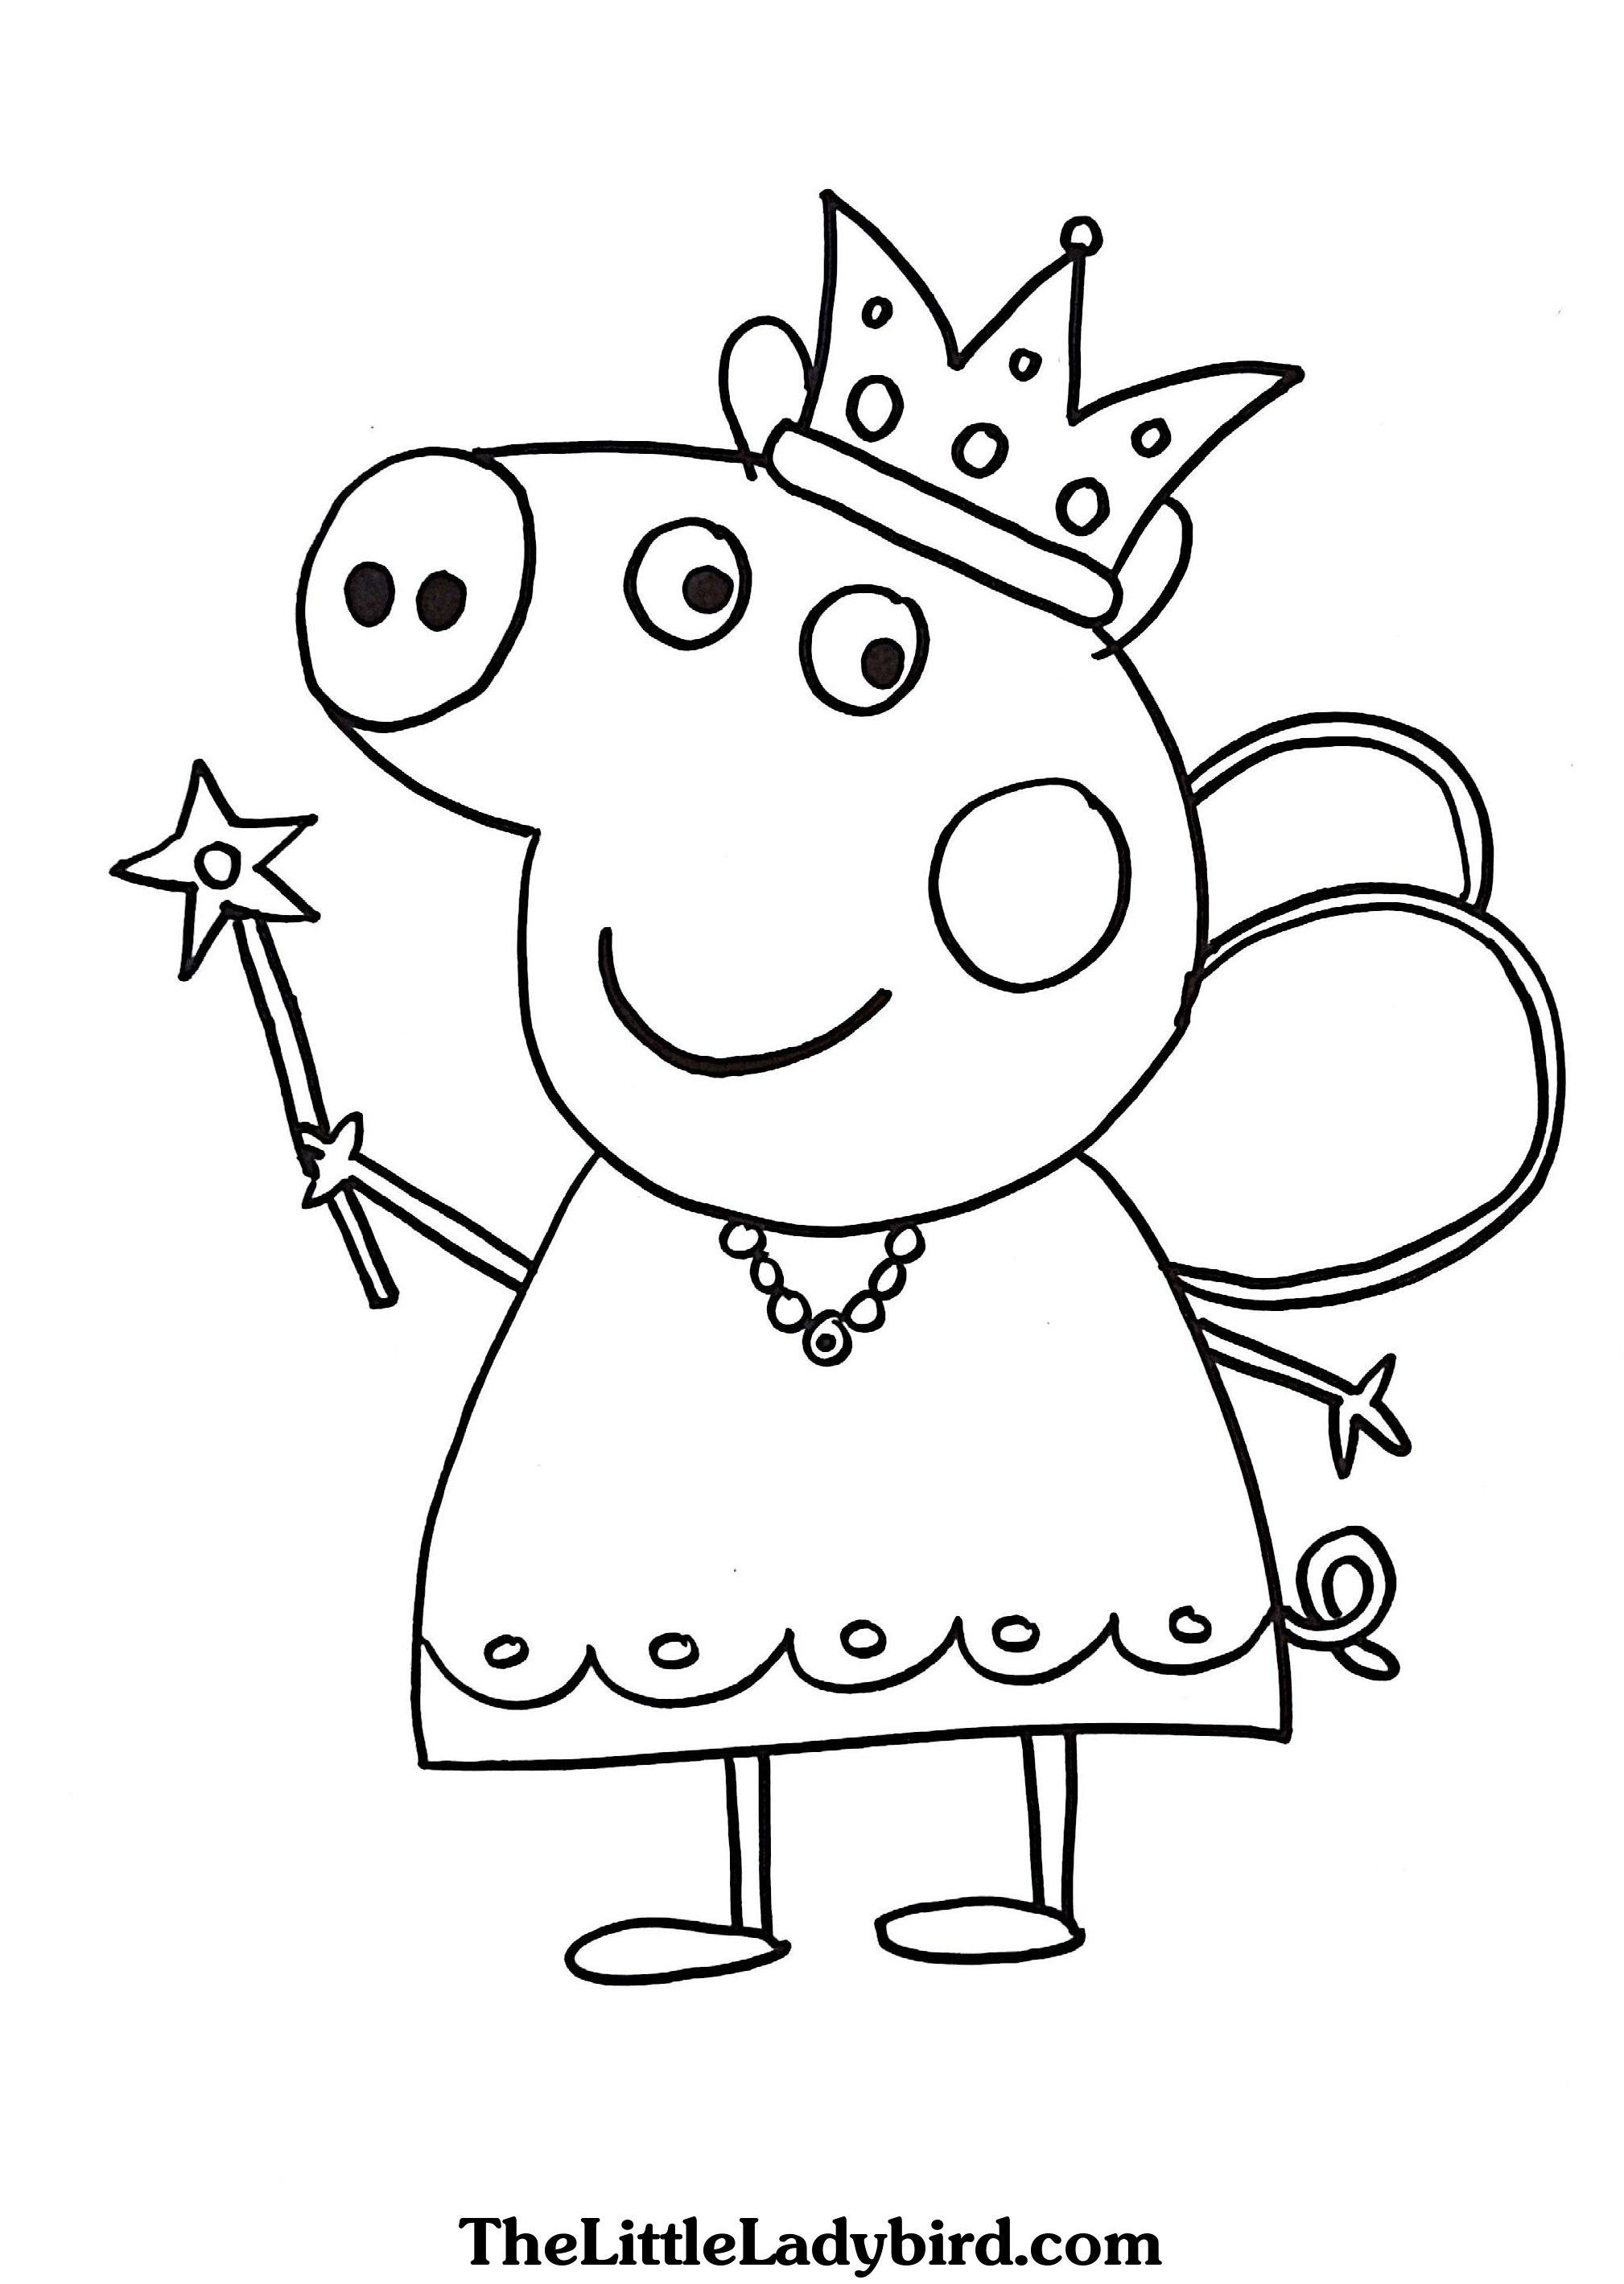 Princess Peppa Pig Coloring Pages Wallpaper